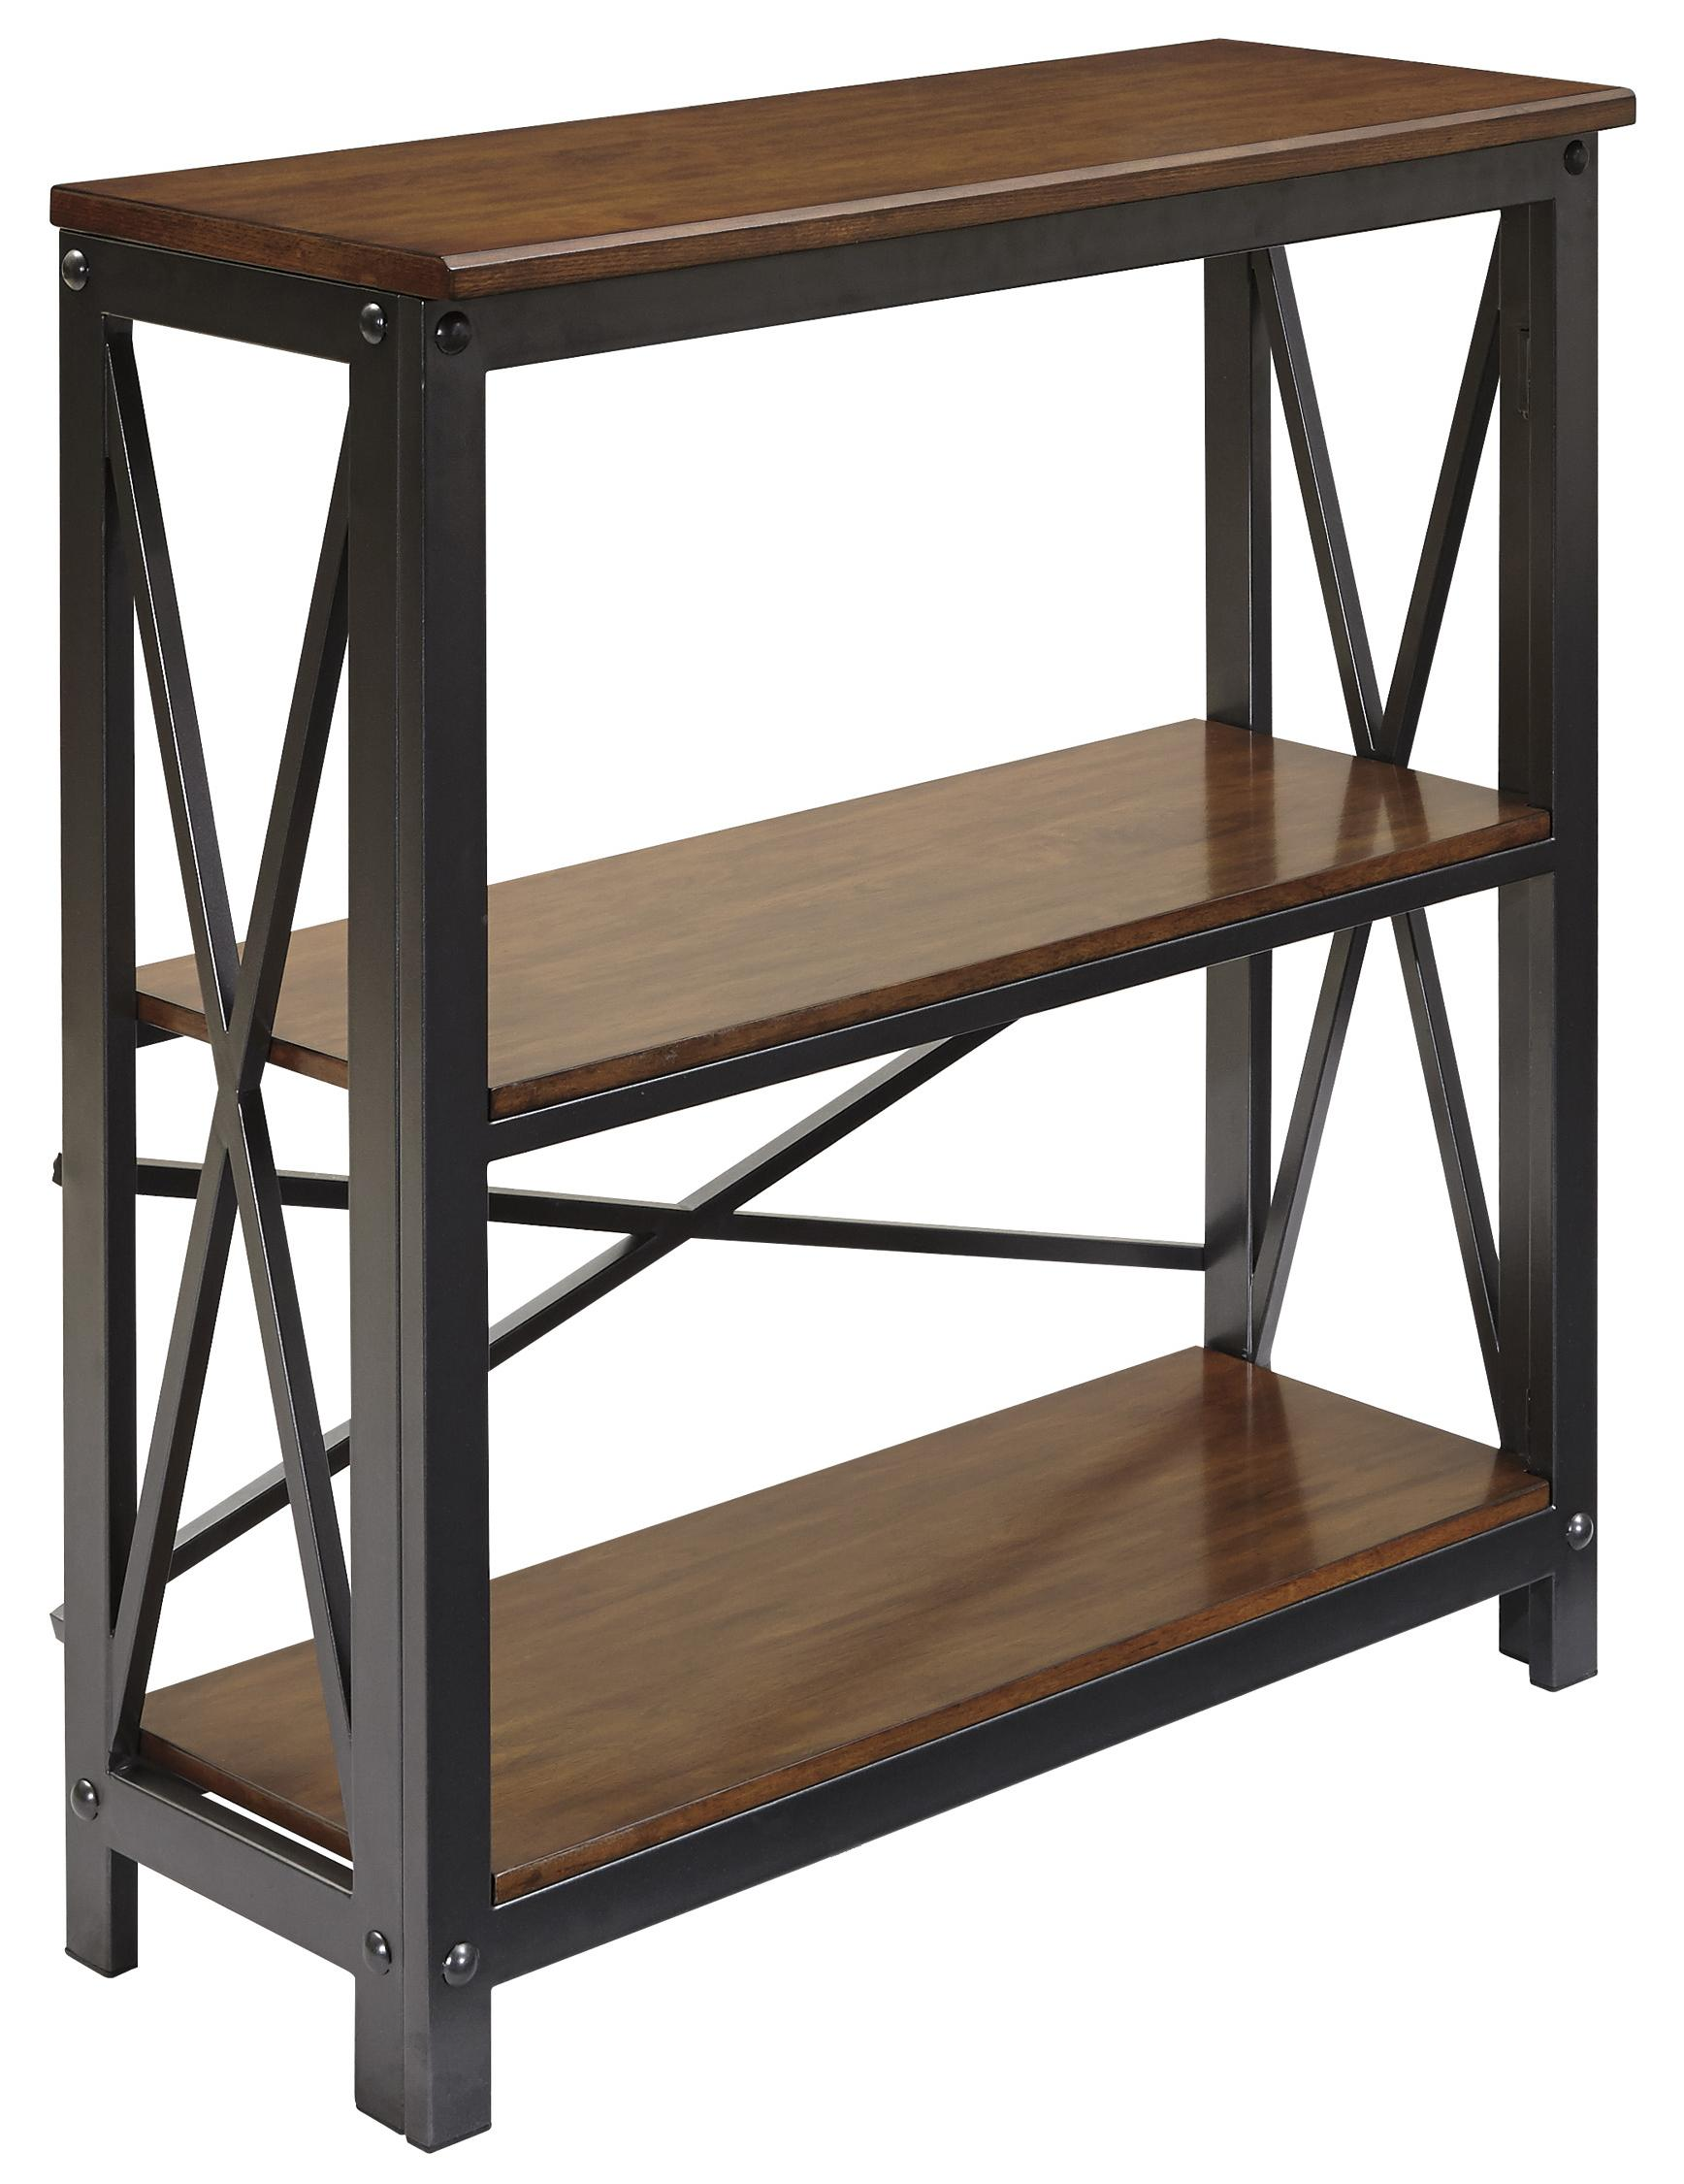 Marvelous photograph of  Shelves Black Metal Frames Brown Wooden And Wood Splendid Ideas Of Woo with #674934 color and 1736x2251 pixels